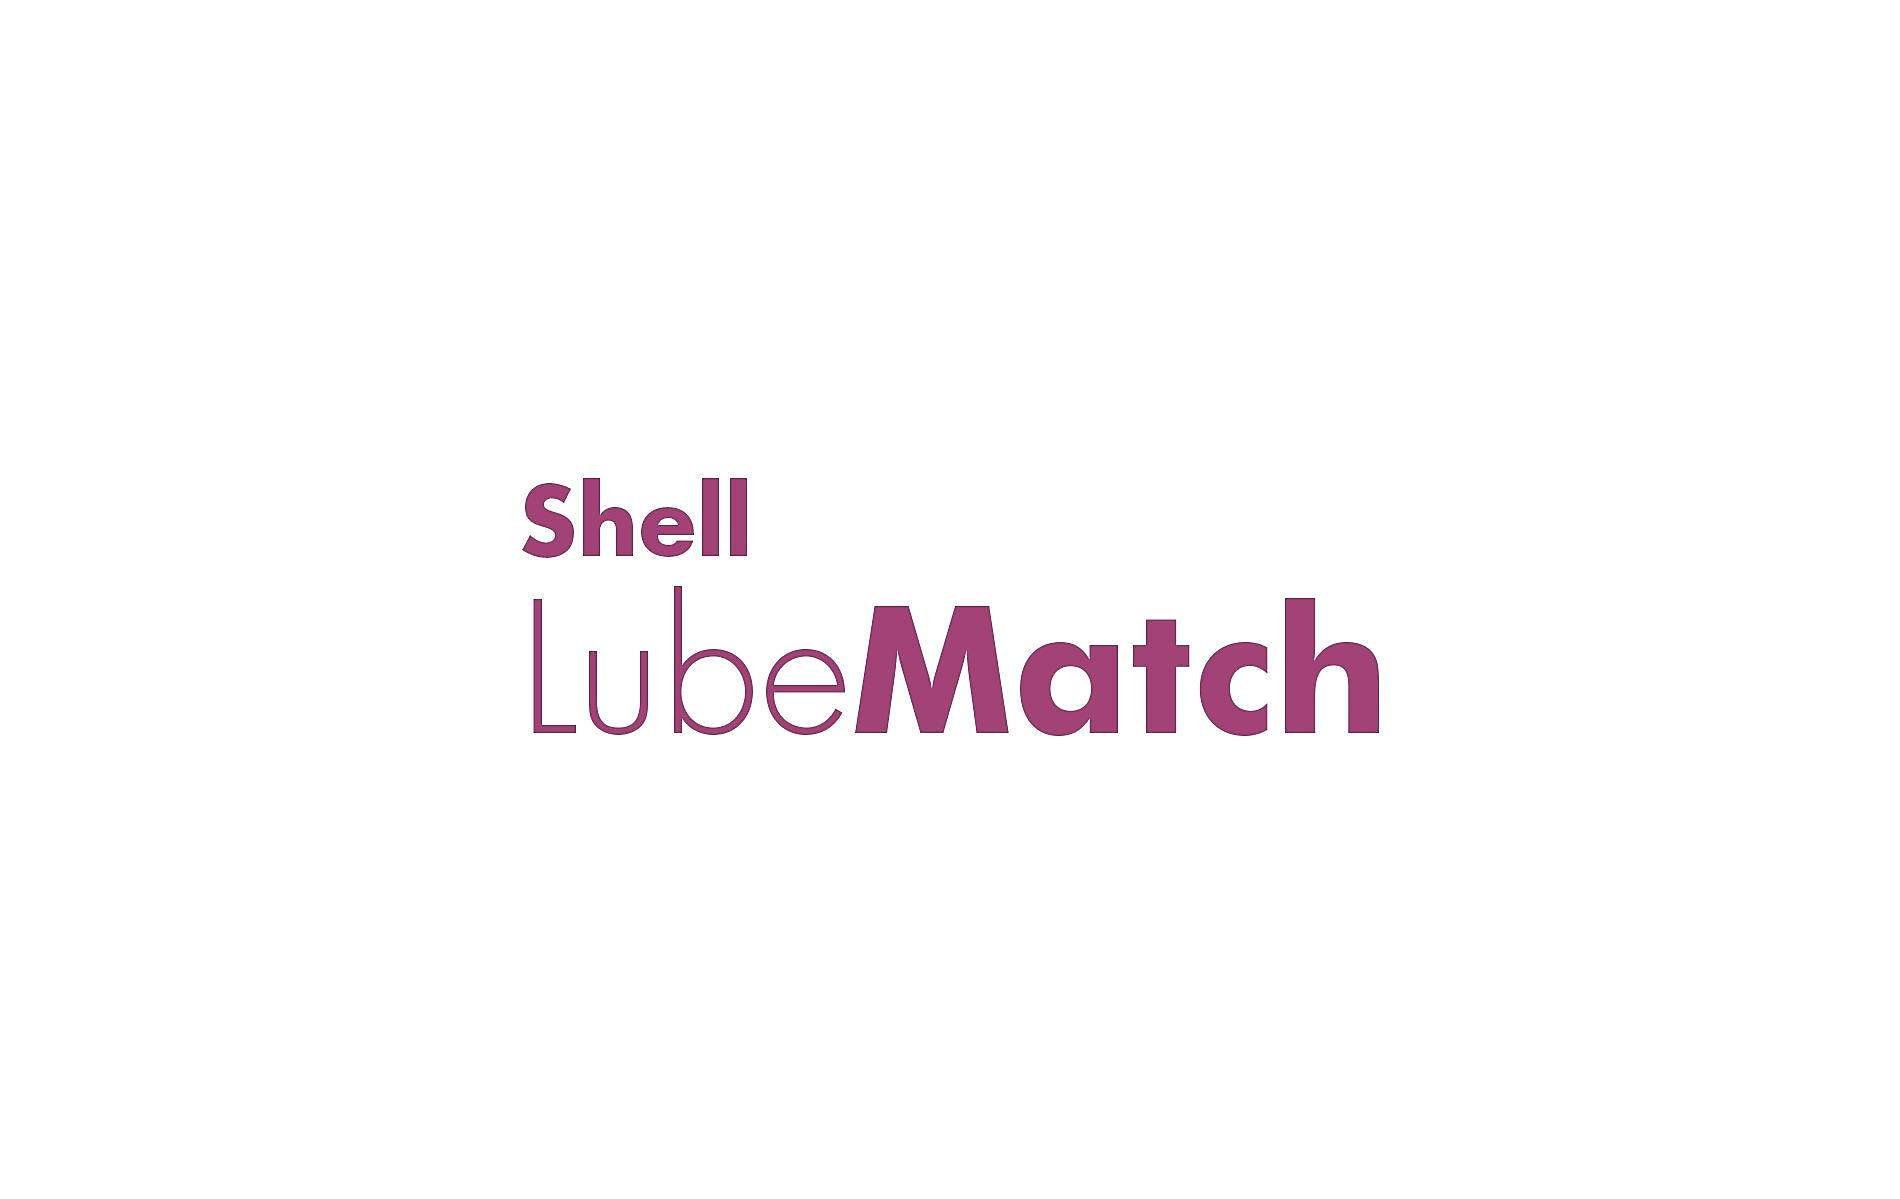 Logo van Shell LubeMatch